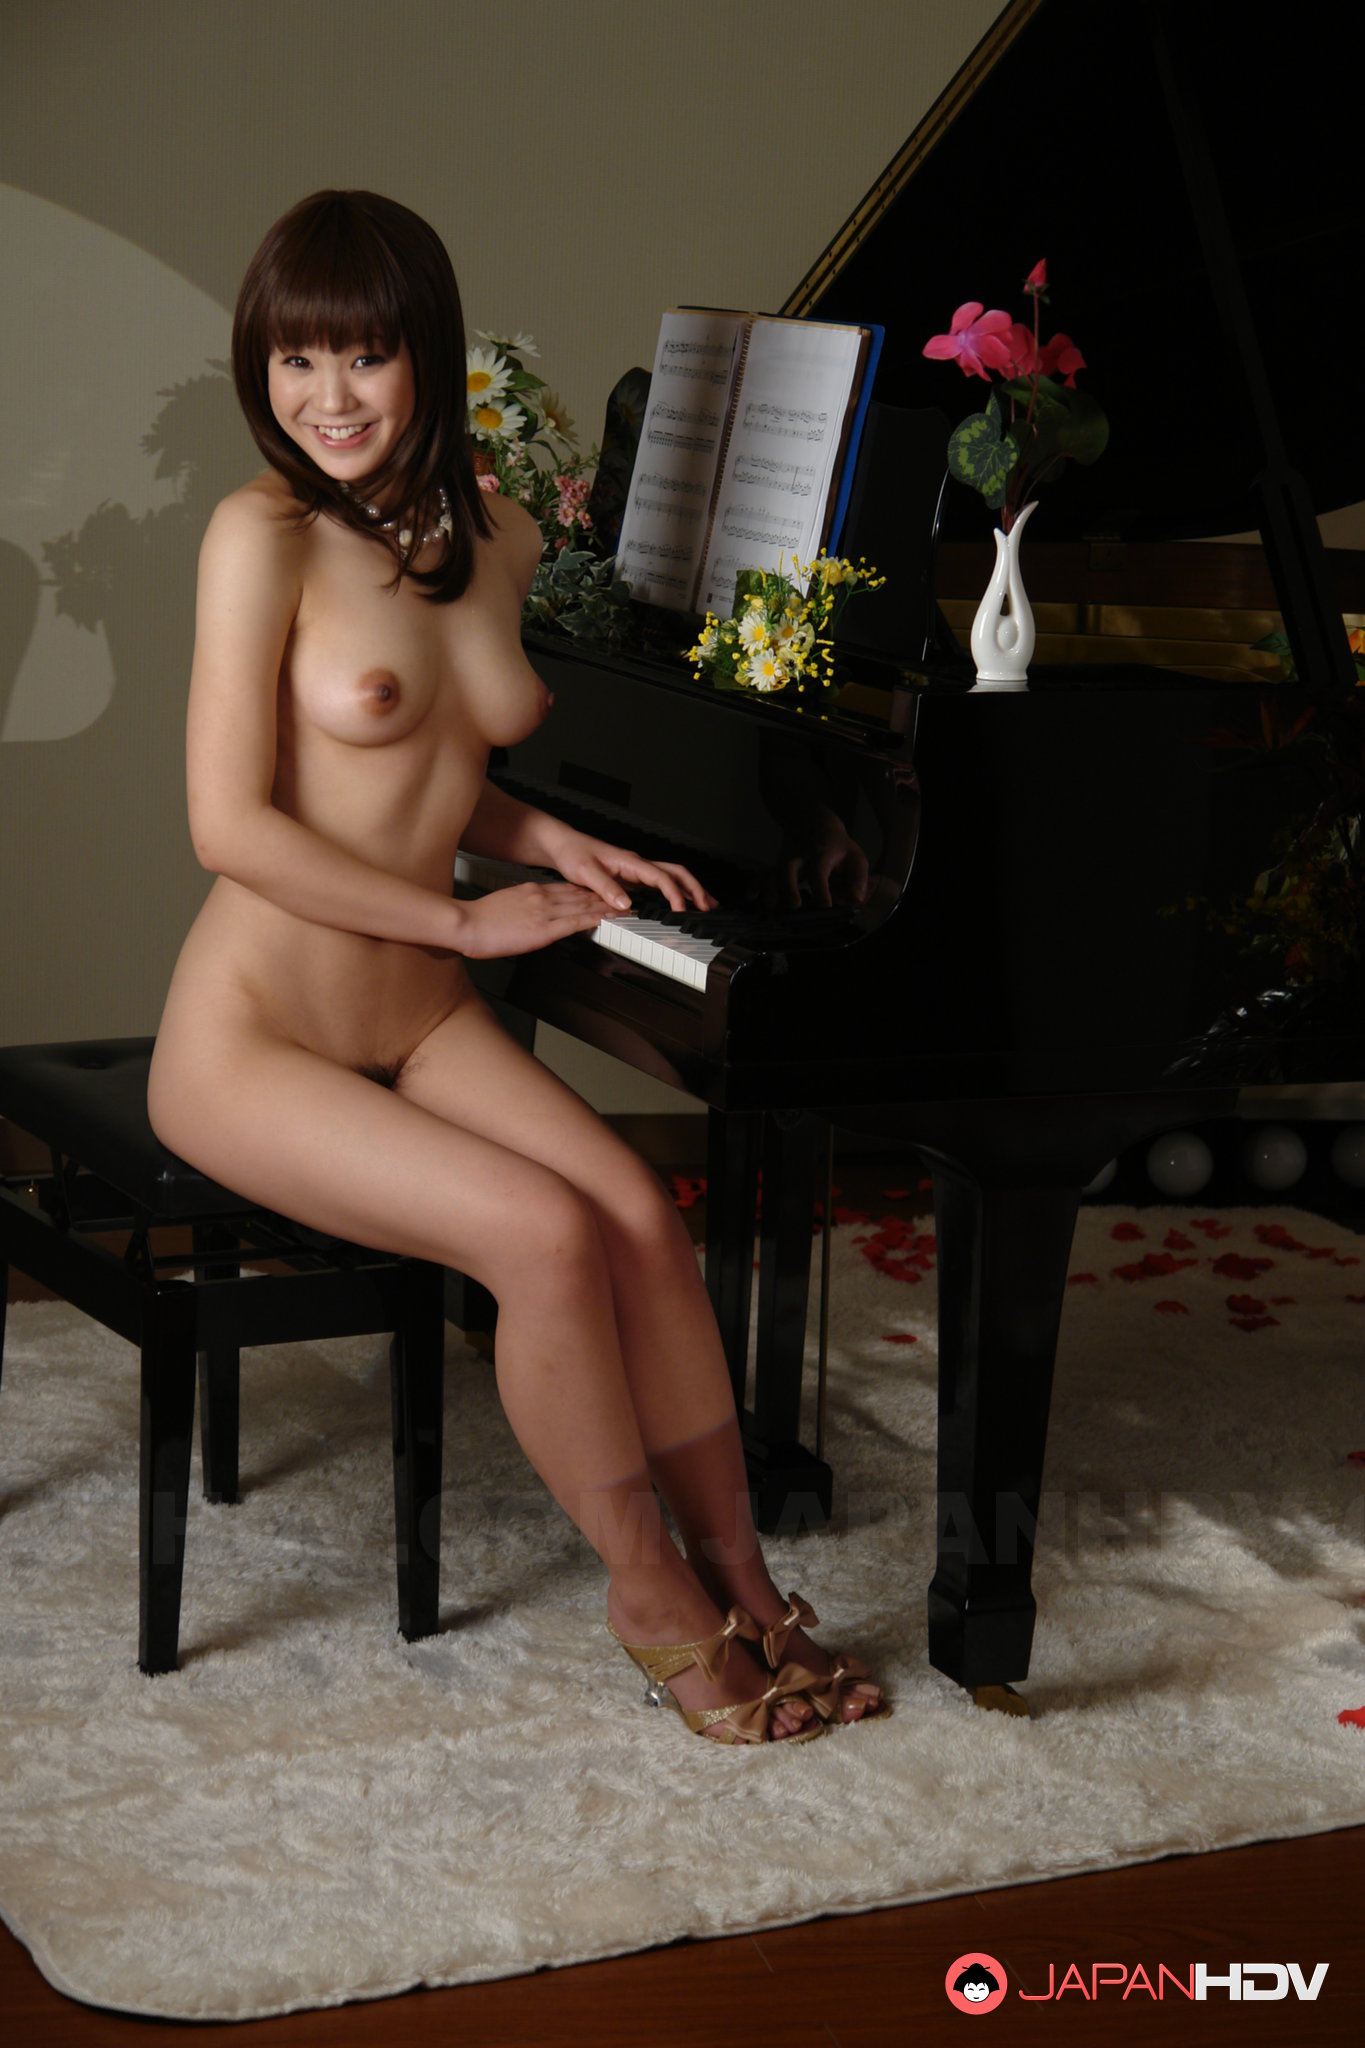 asian-nude-girl-piano